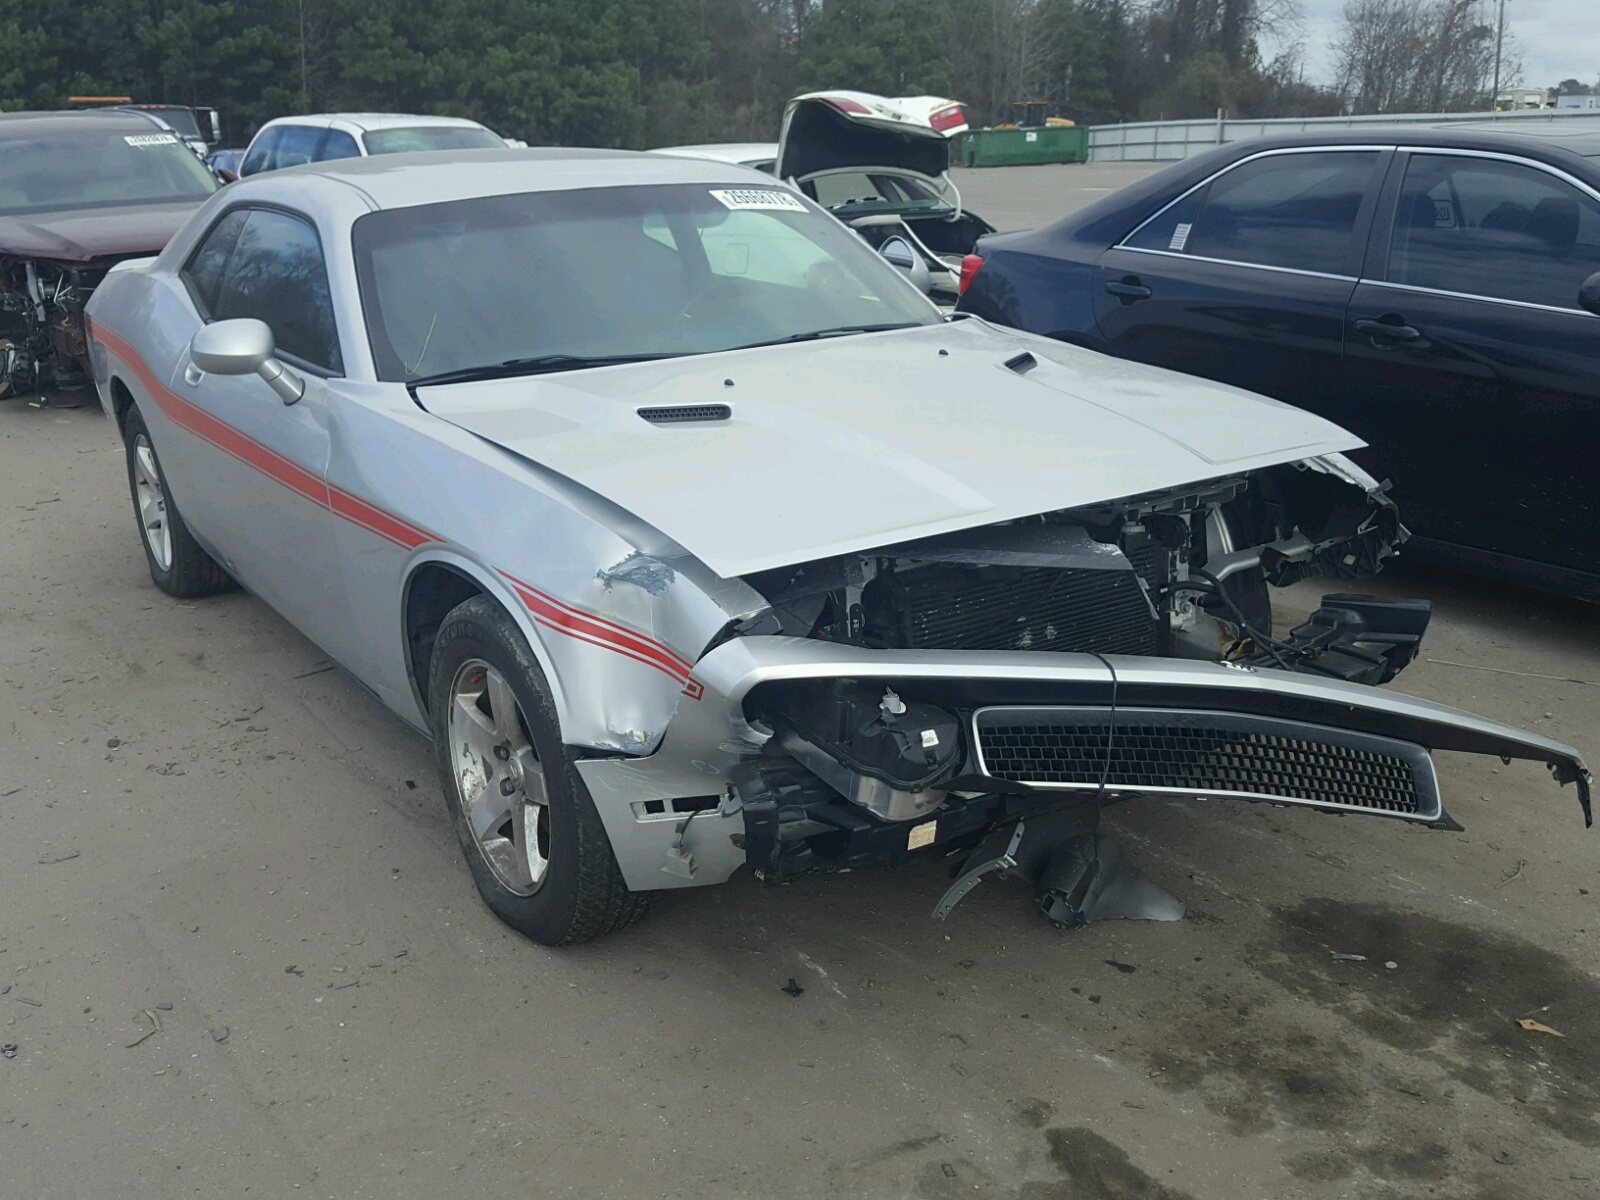 online in raleigh copart salvage on auto for view auctions black sale lot challenger left of certificate title carfinder dodge nc en